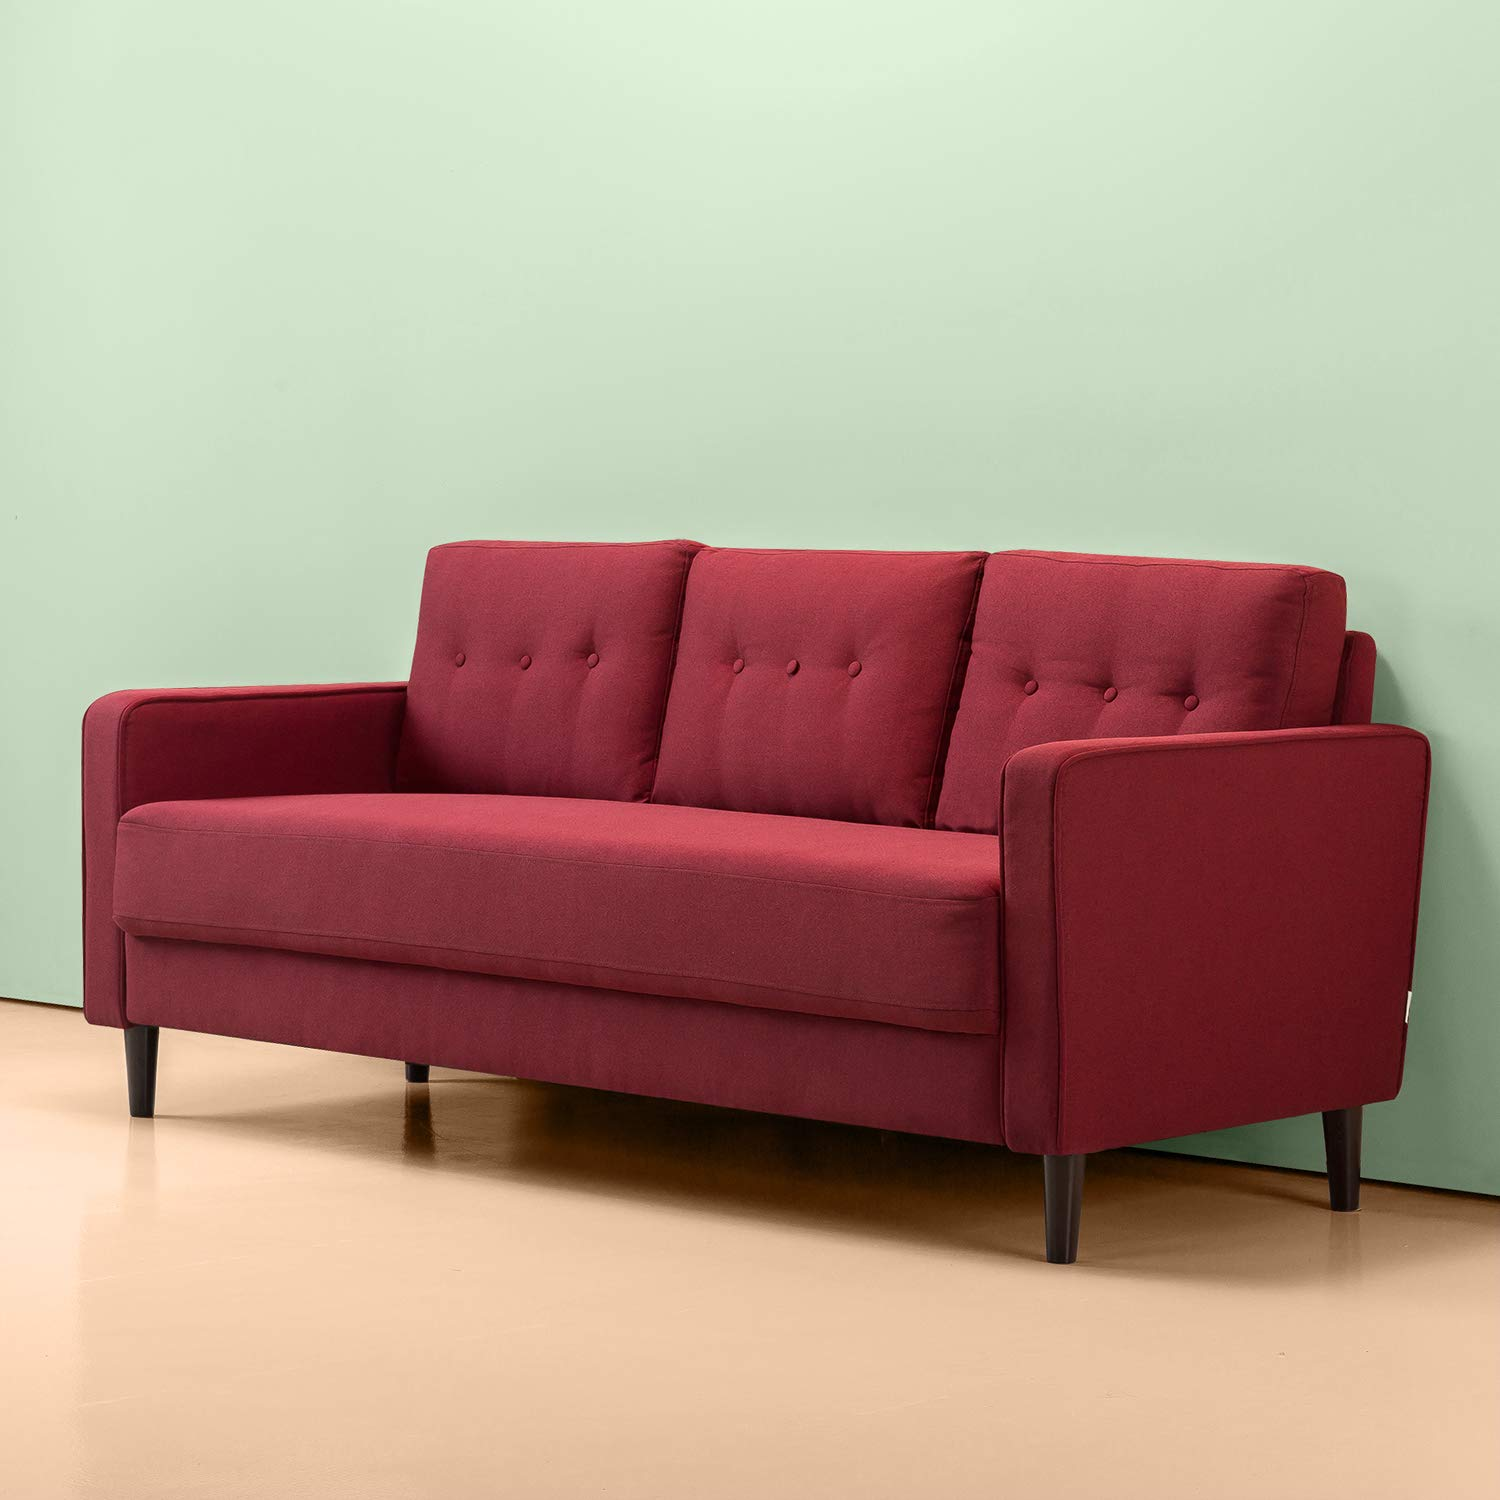 Zinus Mid-Century Upholstered 76in Sofa